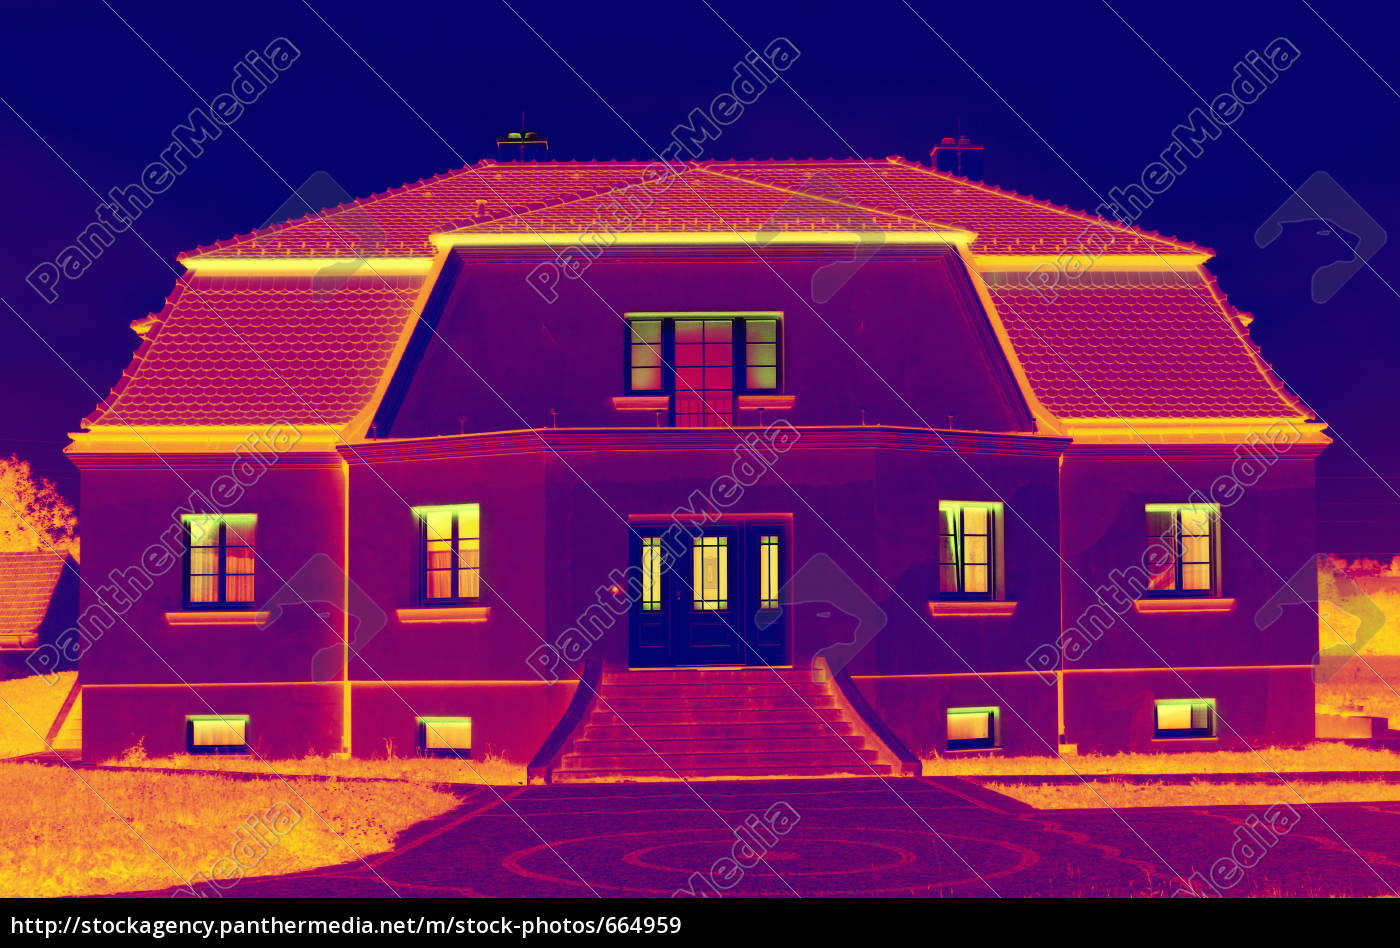 thermography - 664959